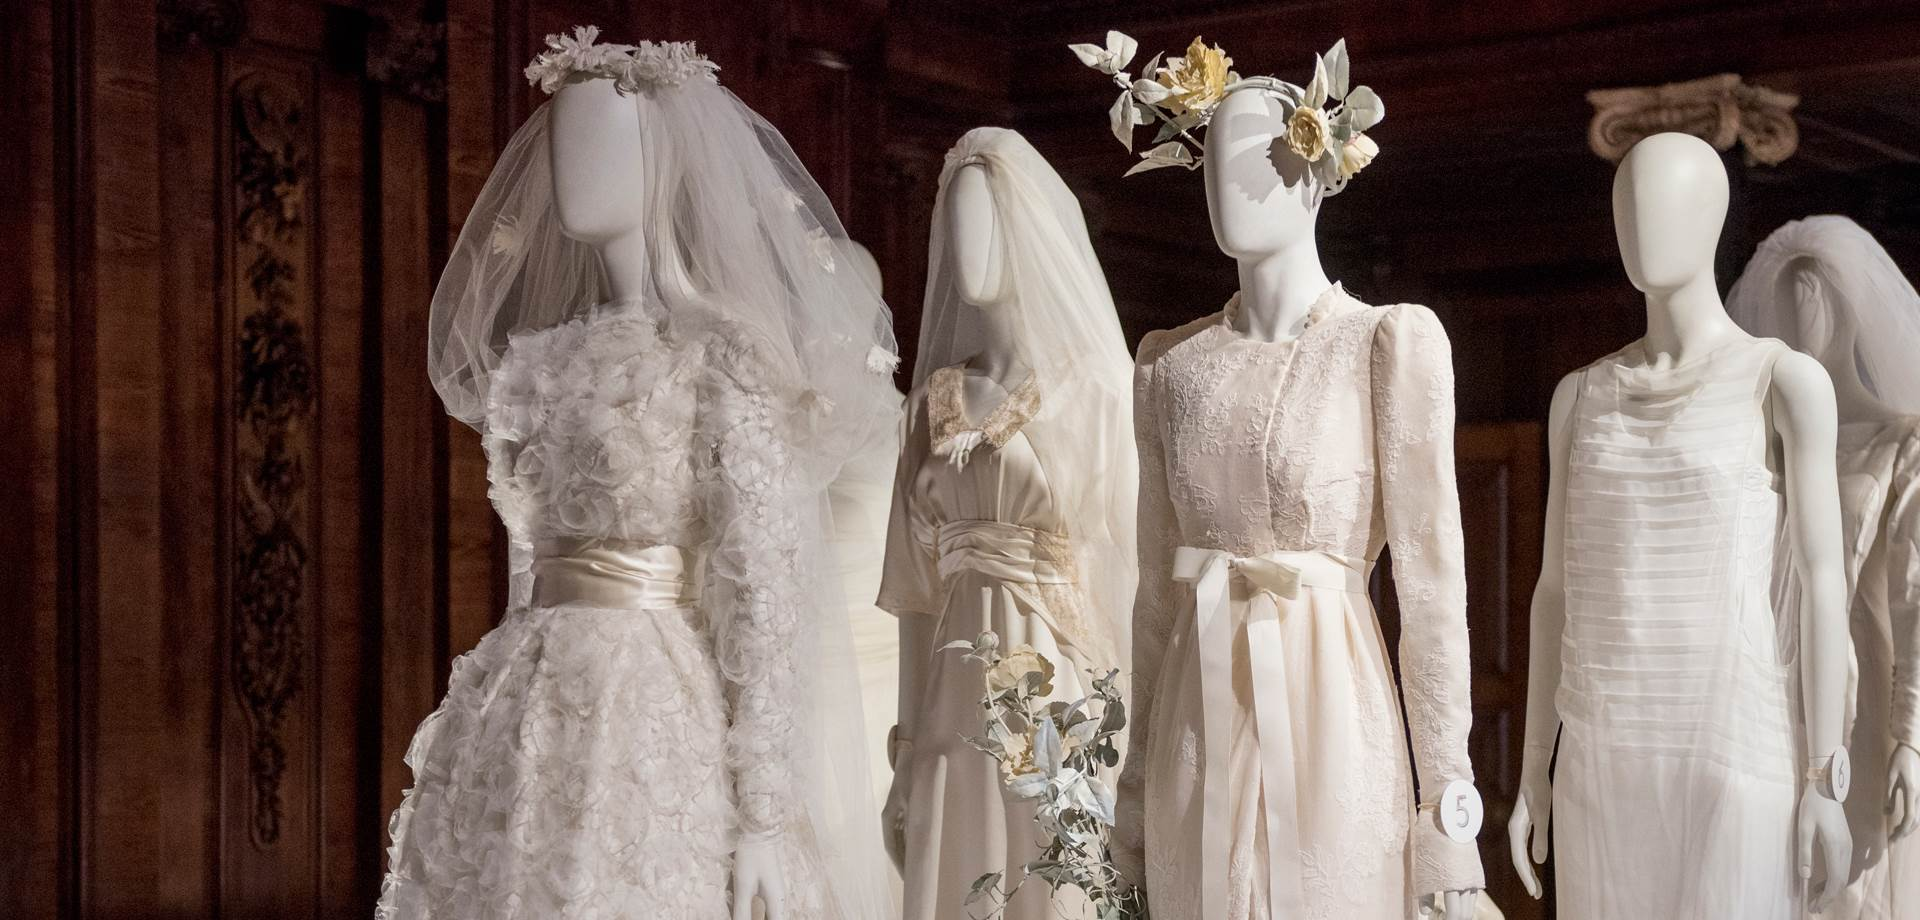 Four wedding  worn  at family weddings displayed in the estates chapel. Image courtesy of Chatsworth Trust.